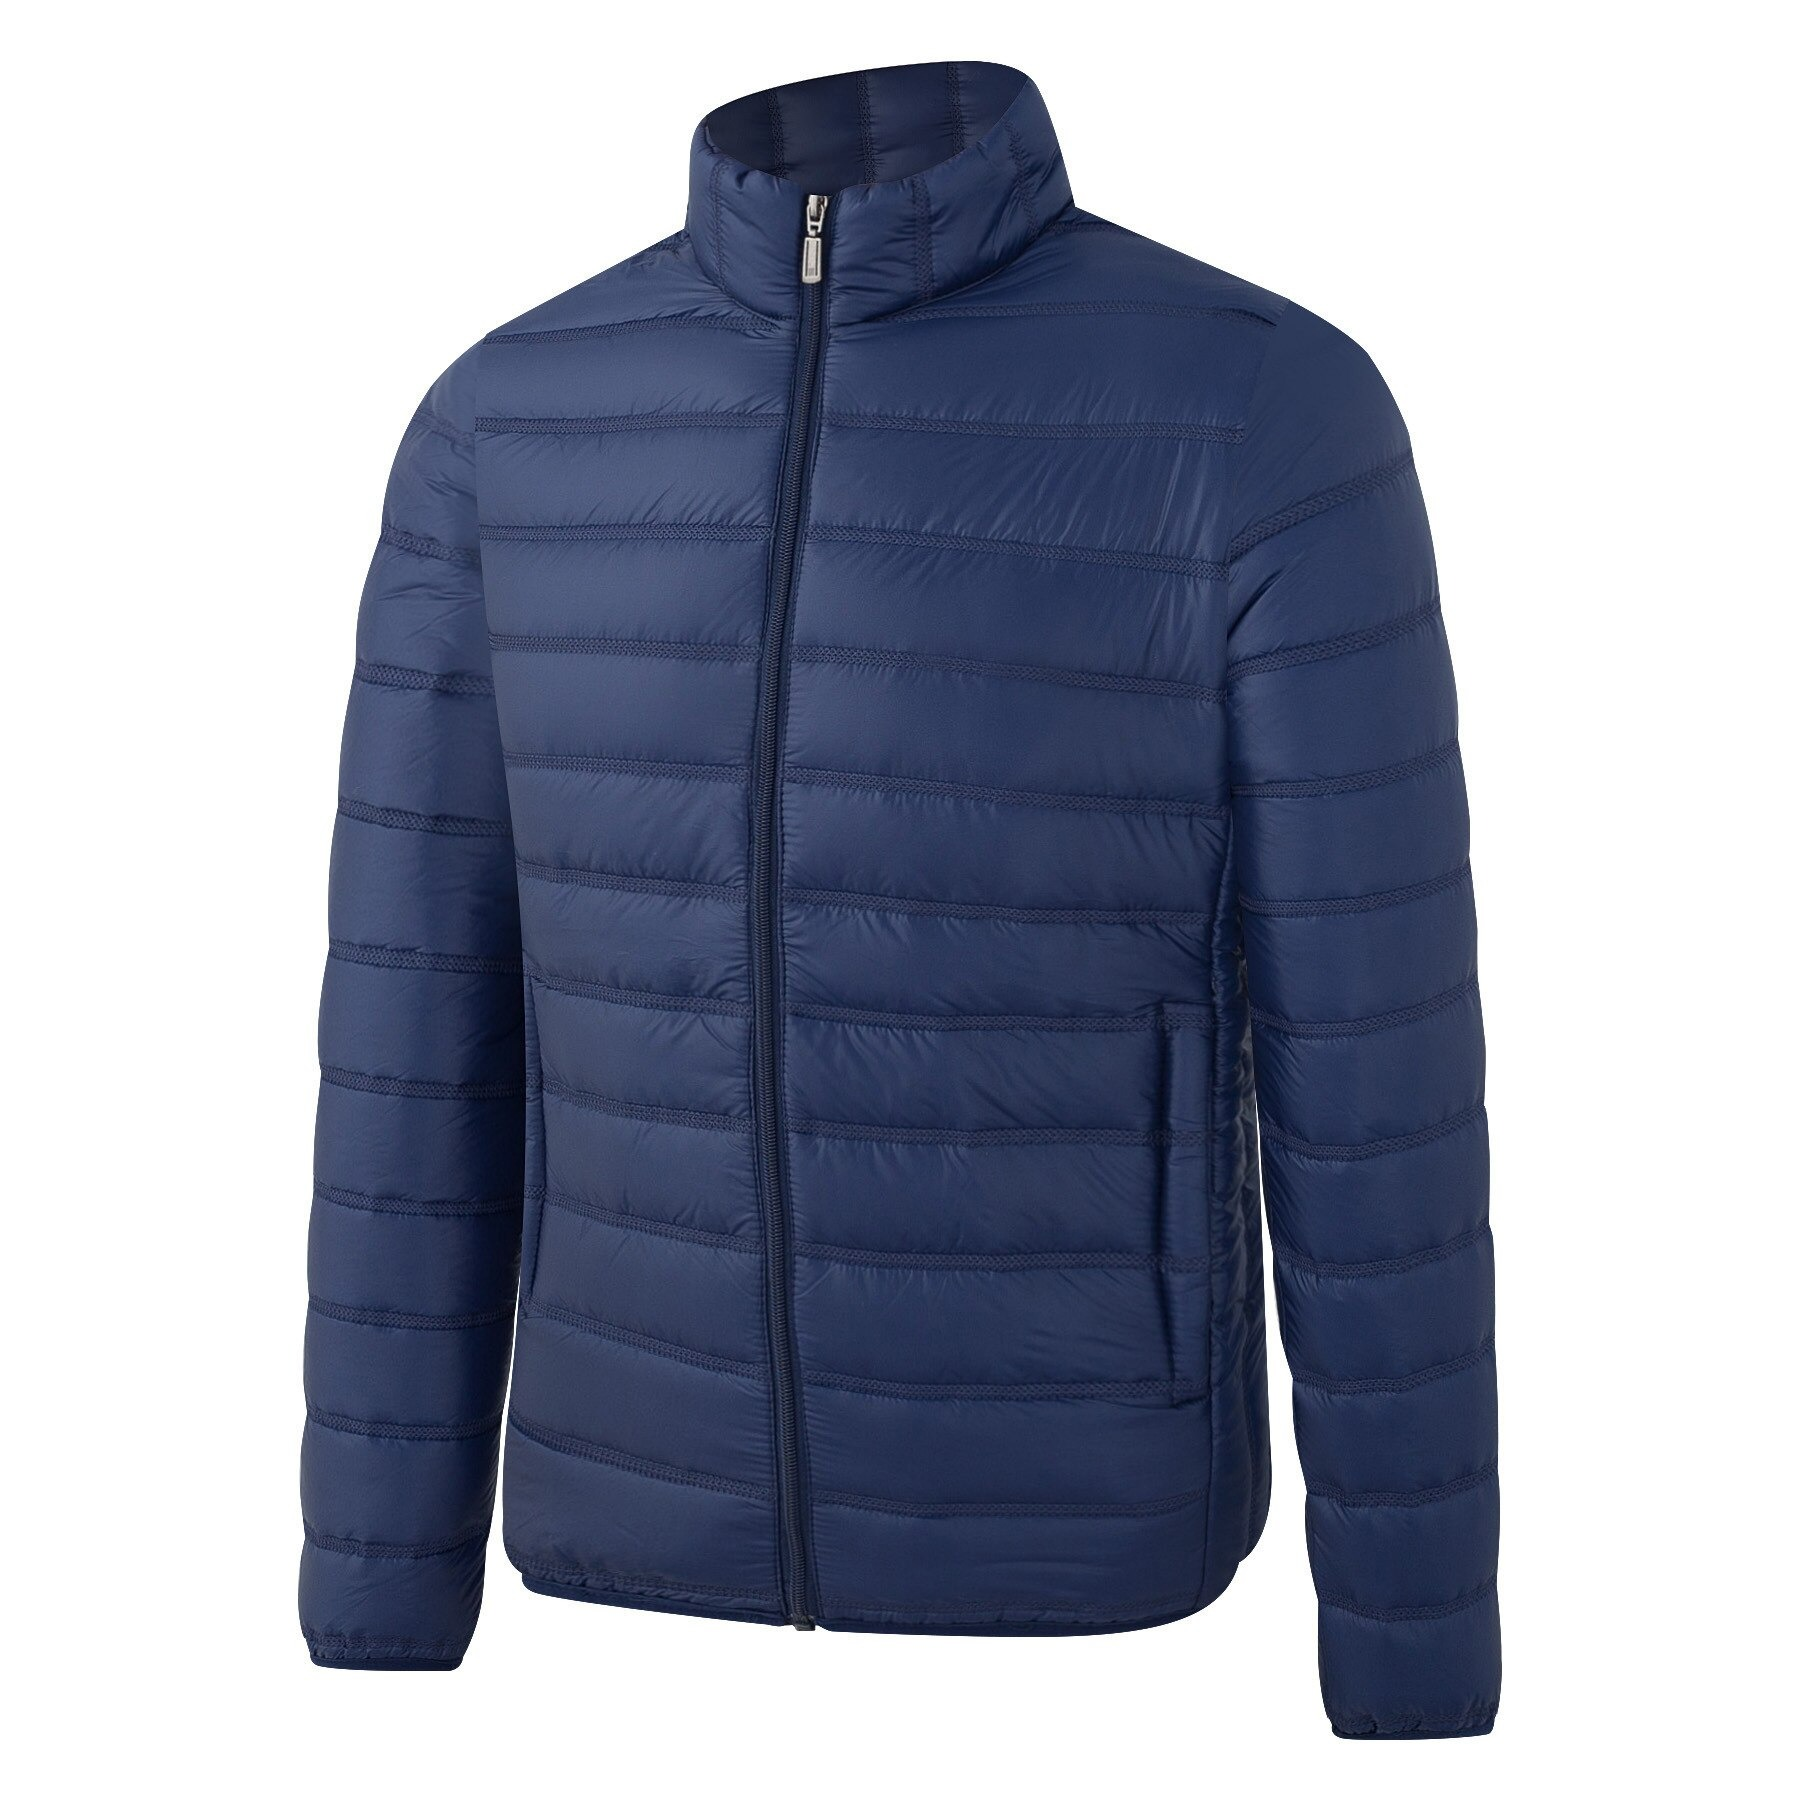 down cotton padded jacket casual all match fashion mens stand up collar thick solid color autumn large size 8733 - PewDiePie Merch